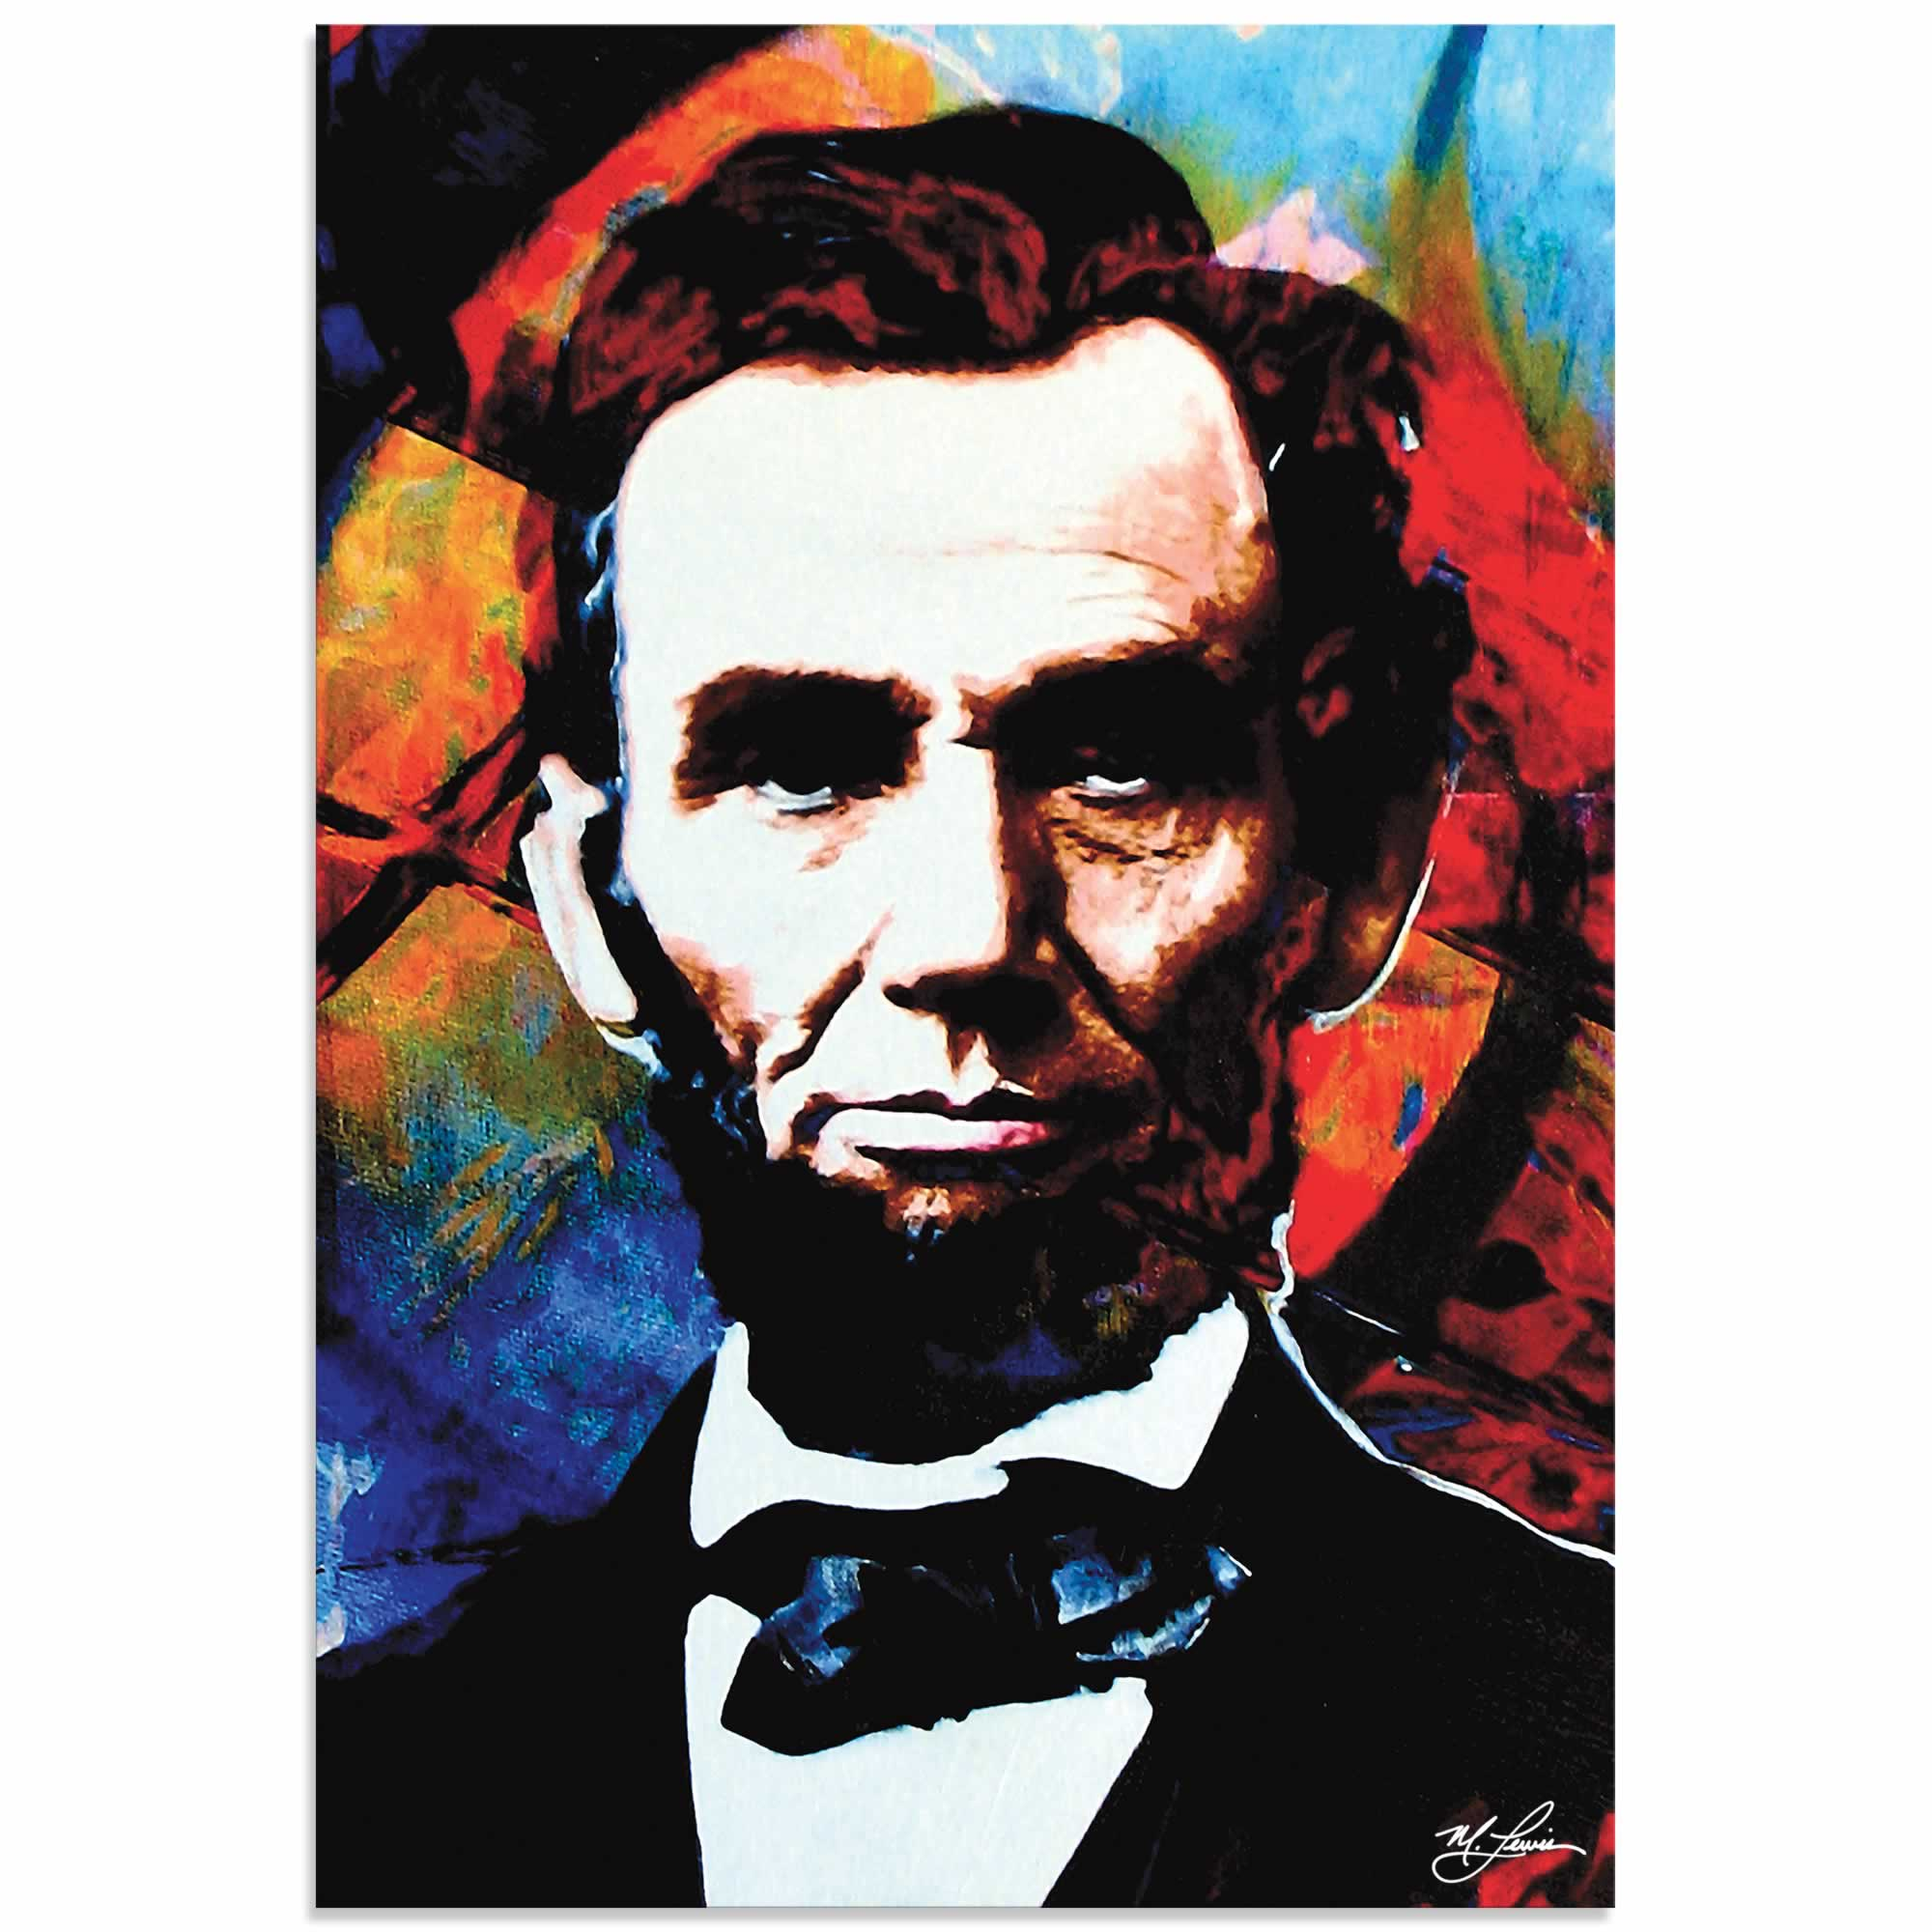 Abraham Lincoln Knowing Lincoln | Pop Art Painting by Mark Lewis, Signed & Numbered Limited Edition